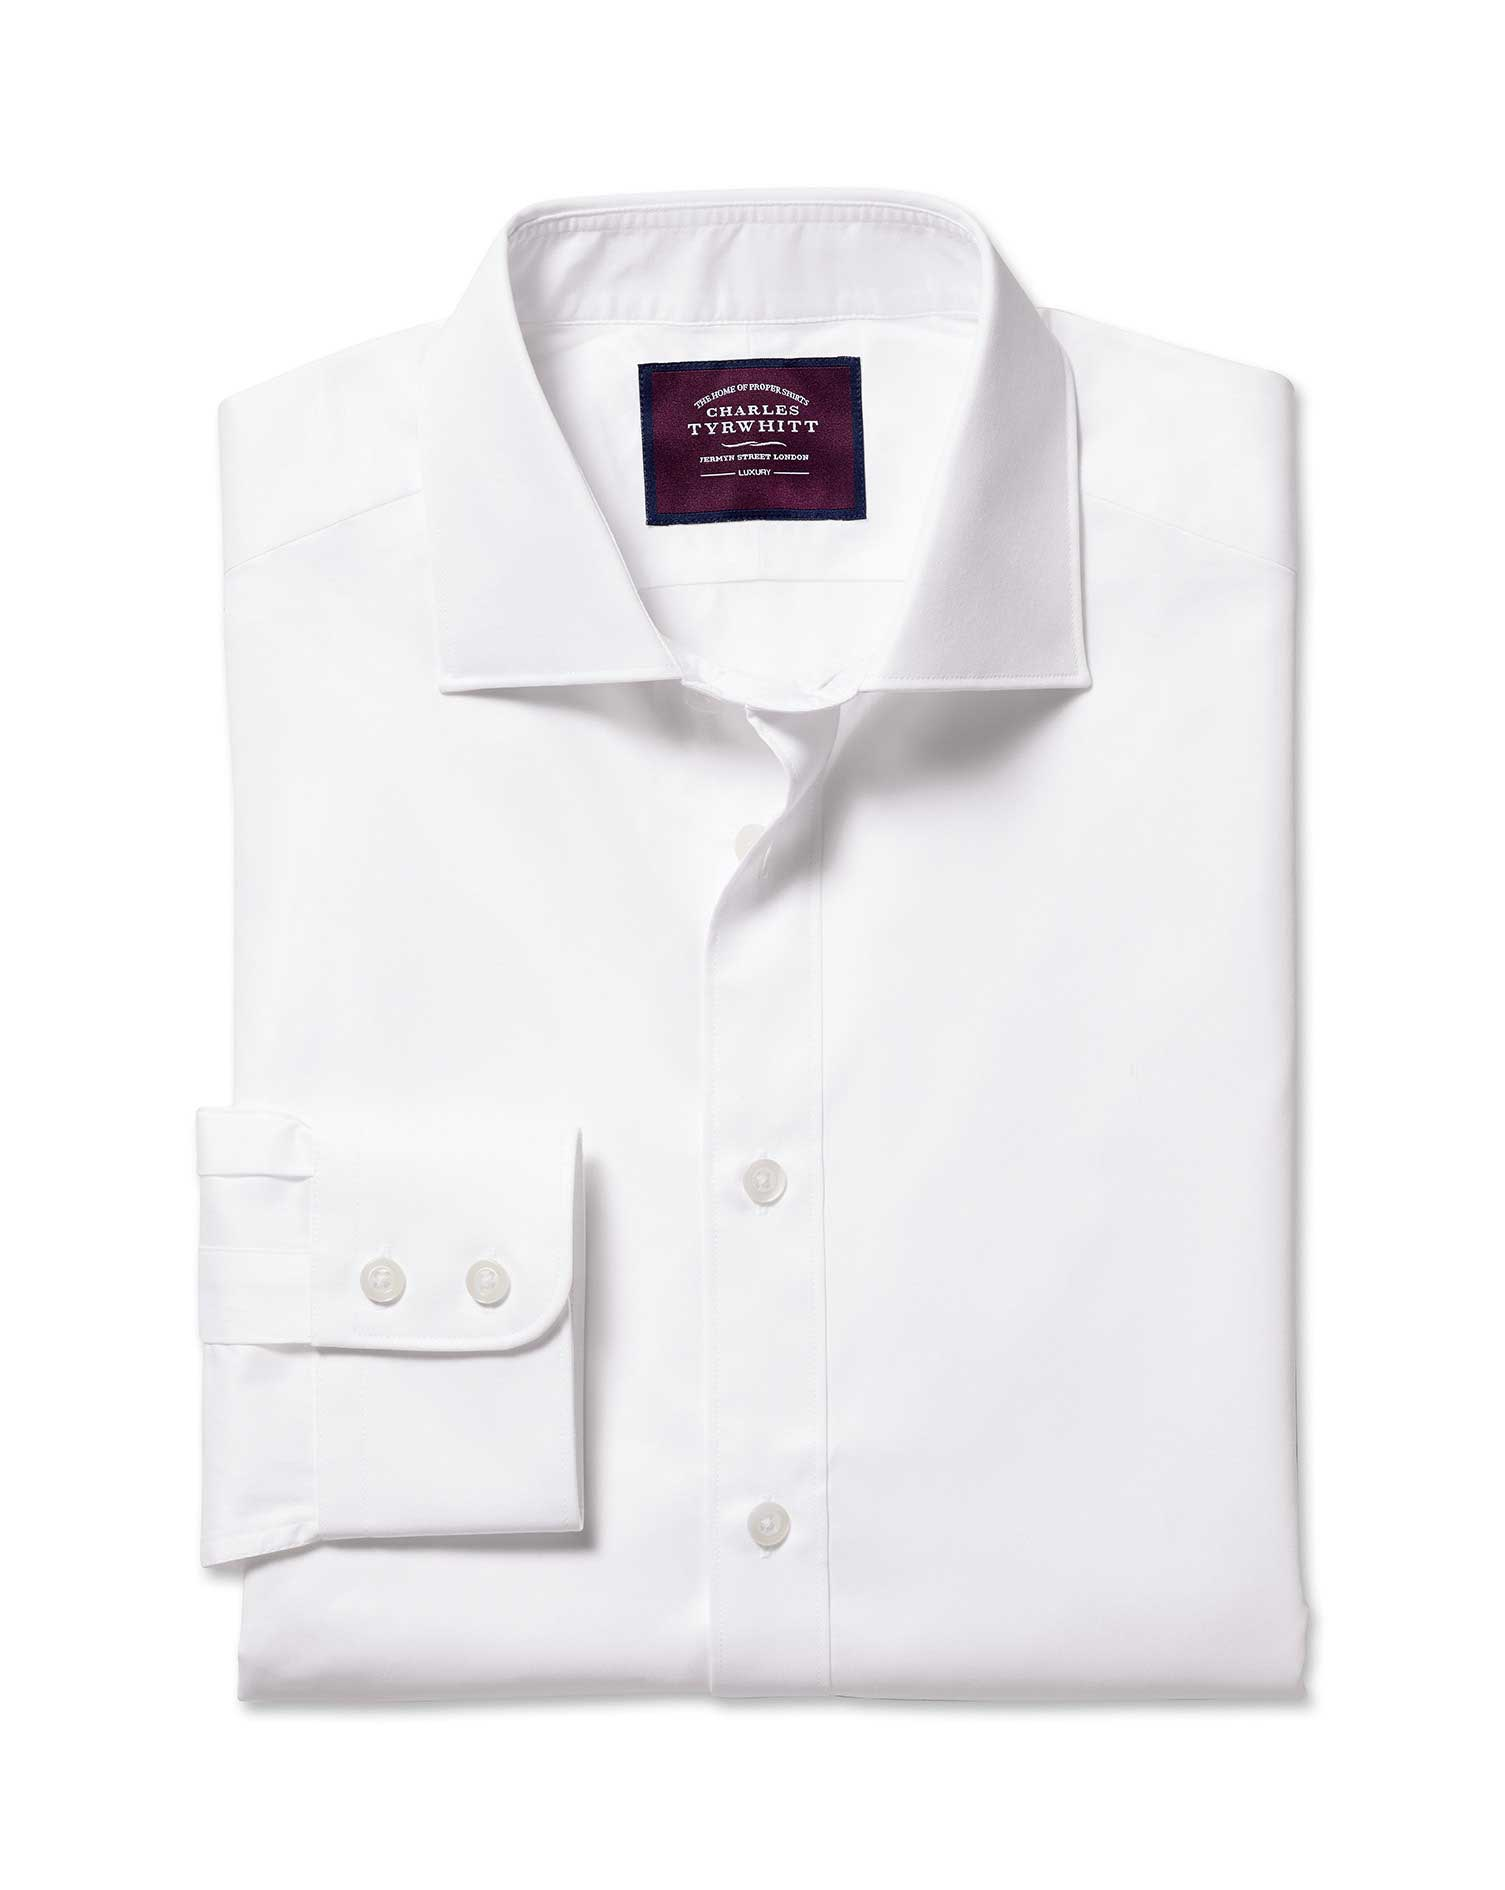 Extra Slim Fit Semi-Cutaway Luxury Twill White Egyptian Cotton Formal Shirt Double Cuff Size 15/35 b